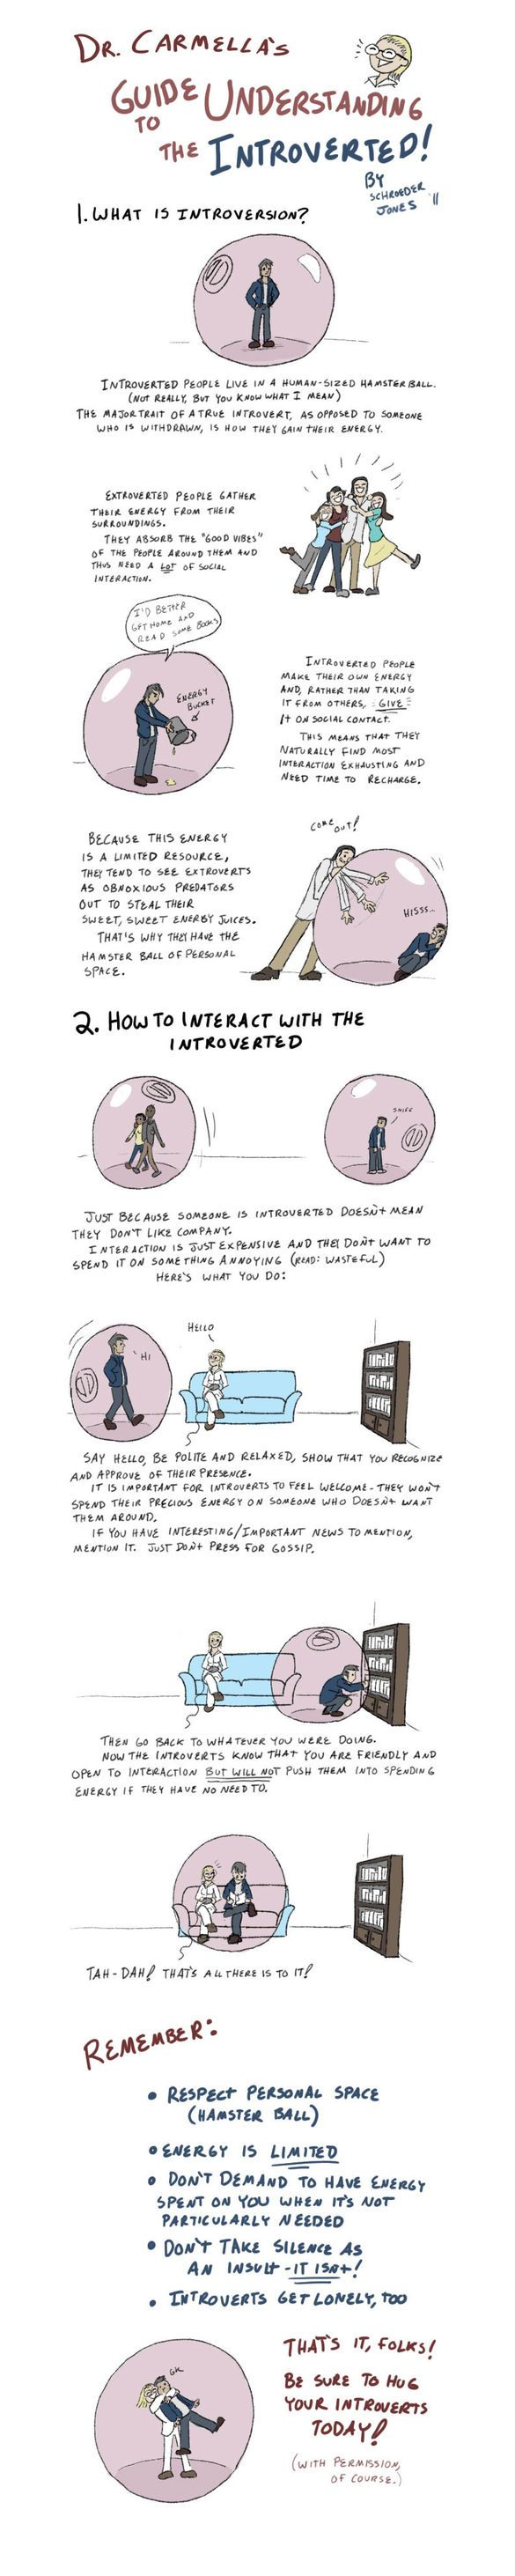 Dr. Carmella's Guide to Understanding the Introverted by Schroeder Jones